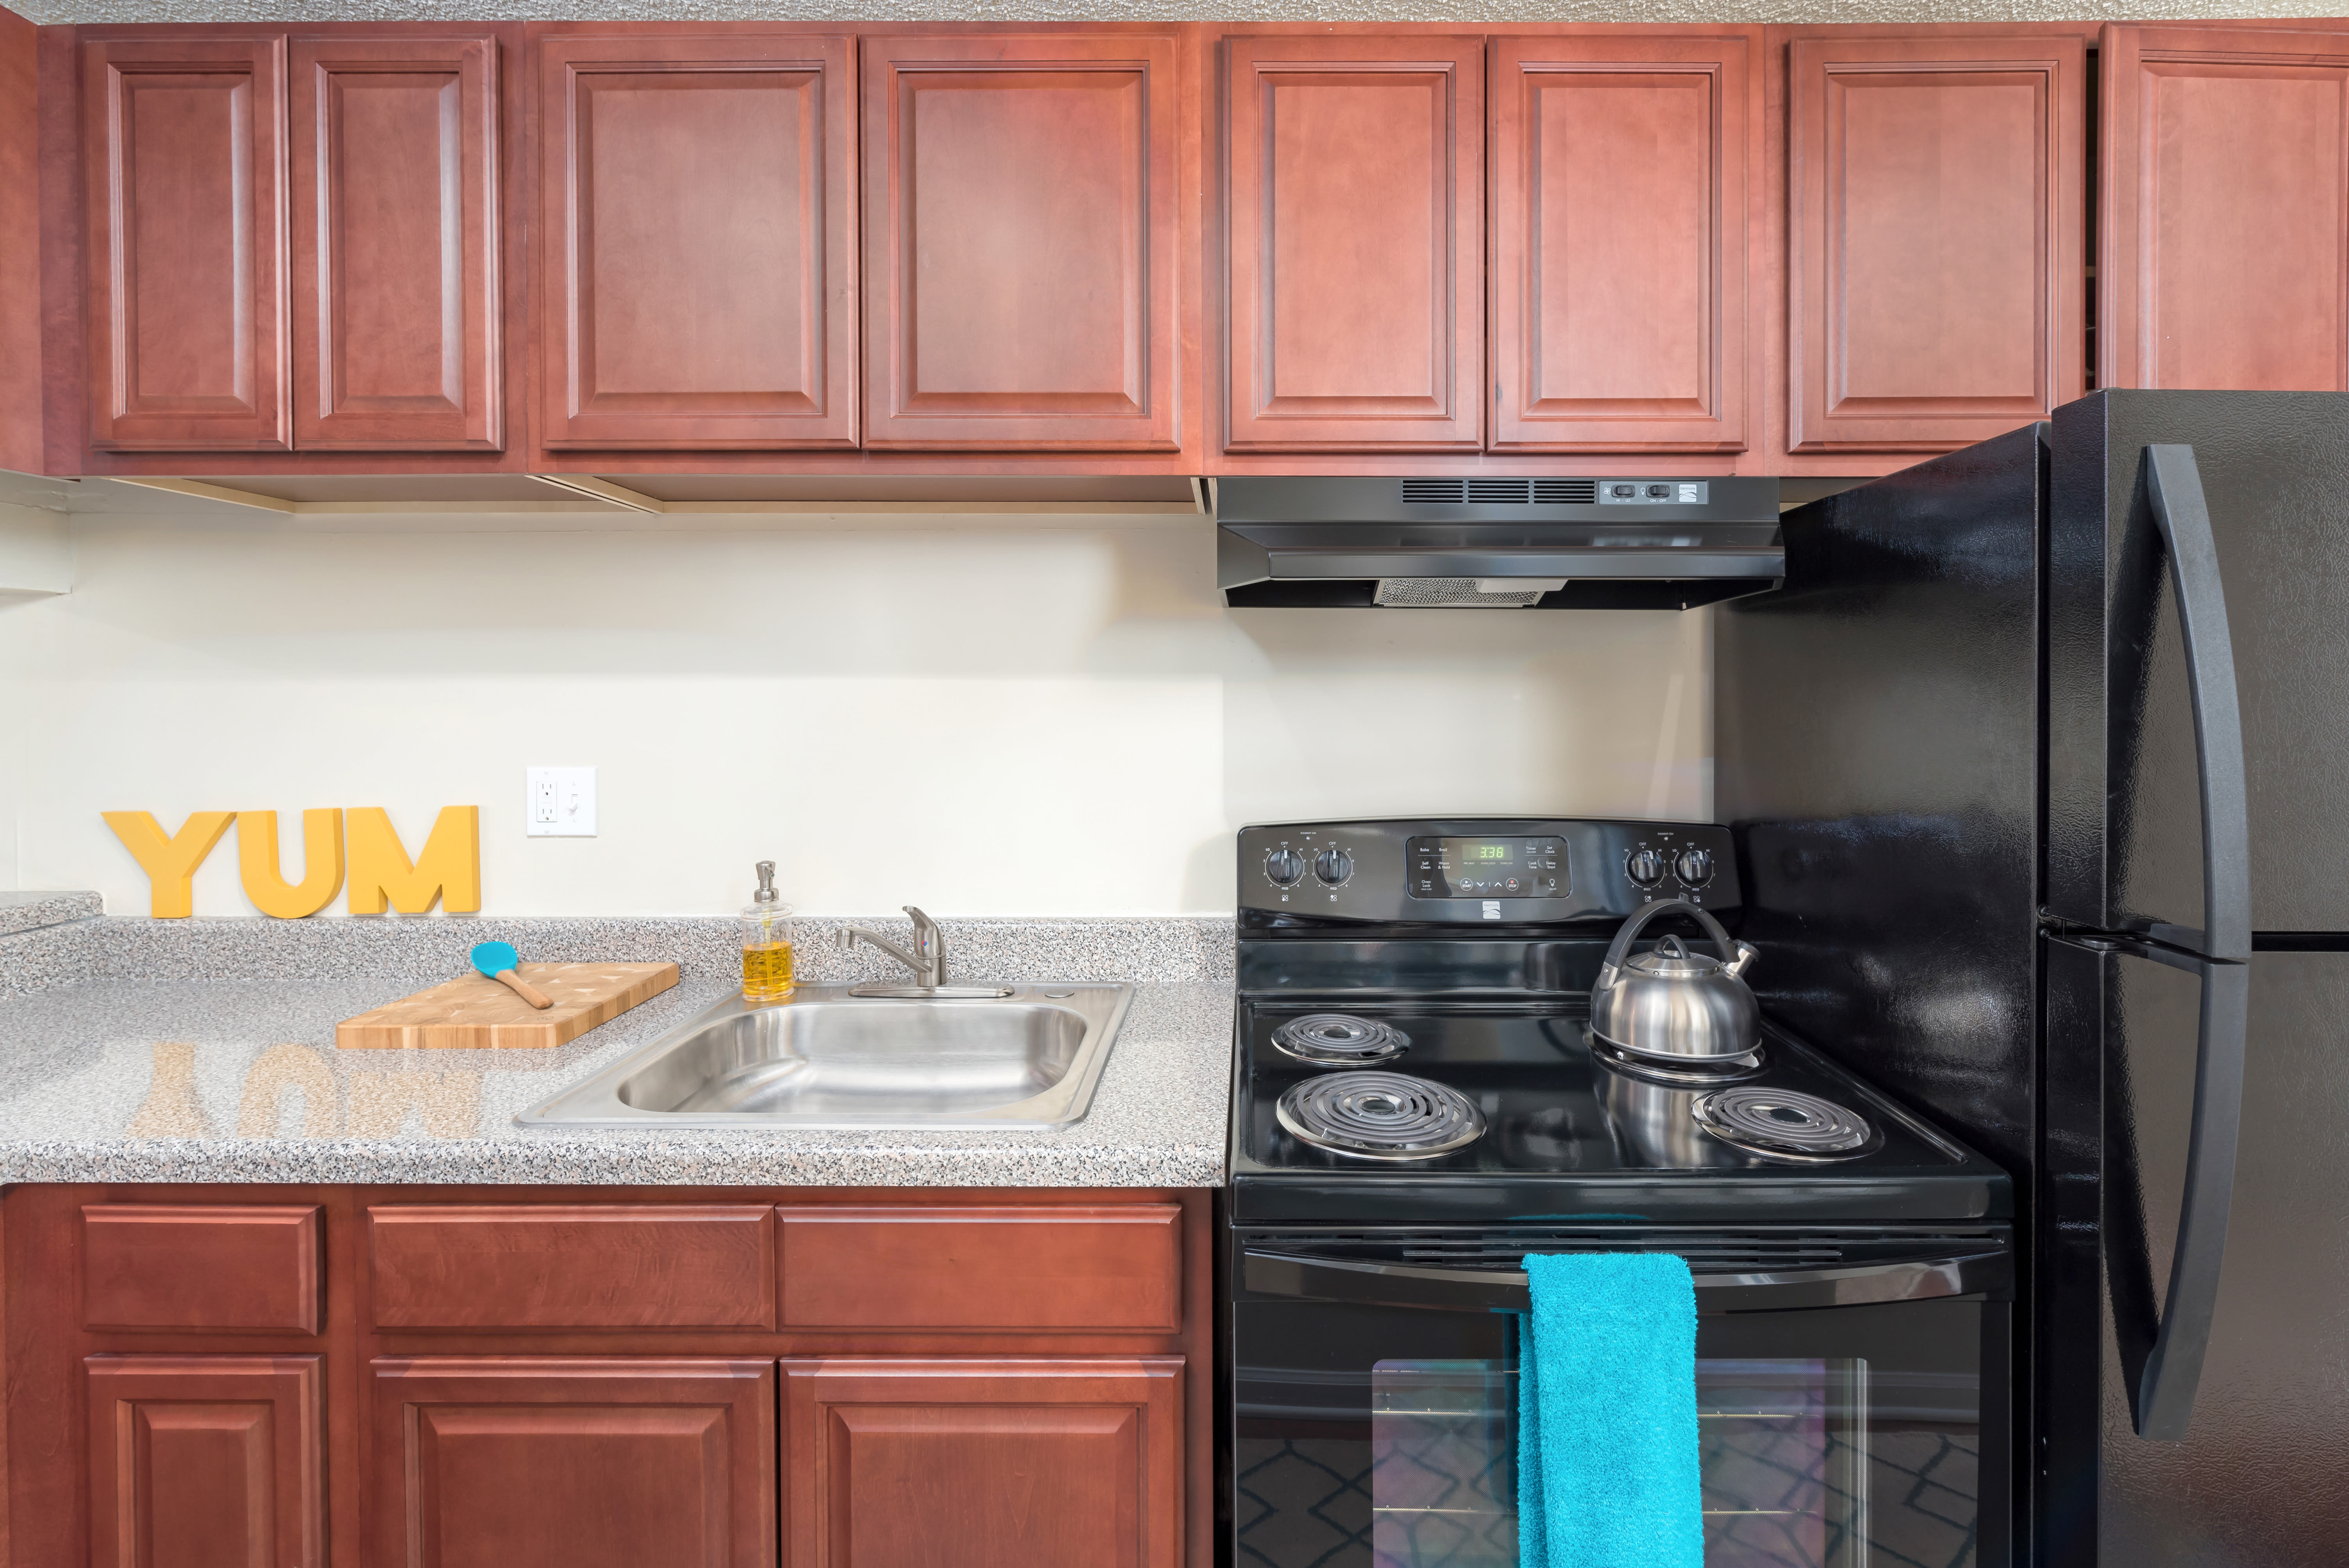 State-of-the-art kitchen at apartments in Richmond, Virginia